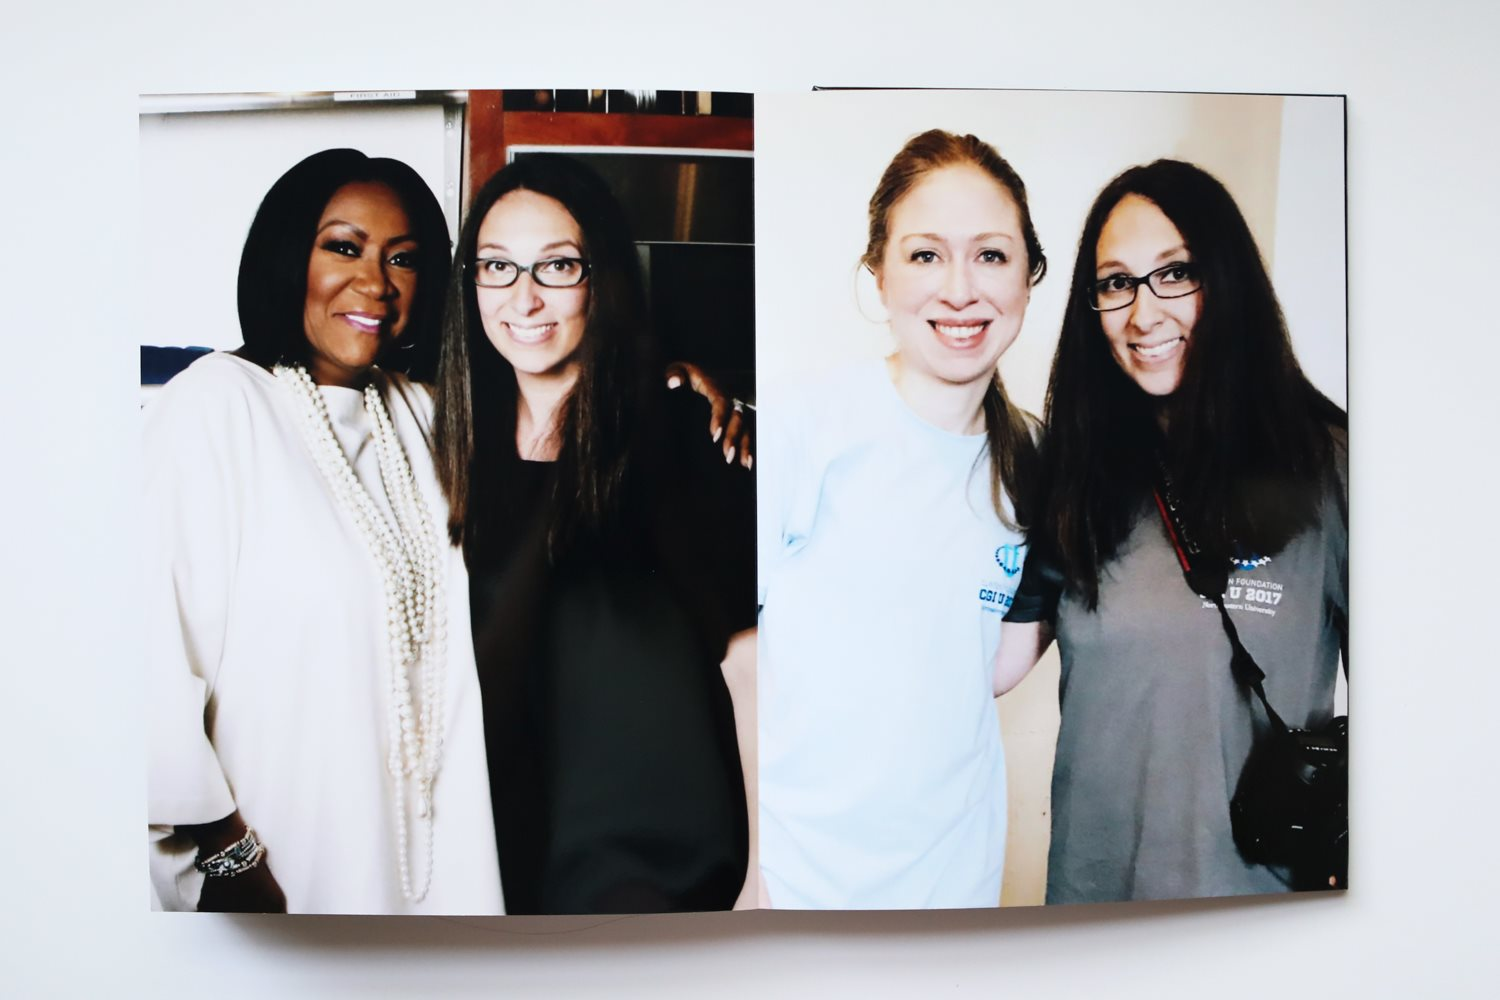 Behind the scenes: Diana Levine and Patti LaBelle, Diana Levine and Chelsea Clinton